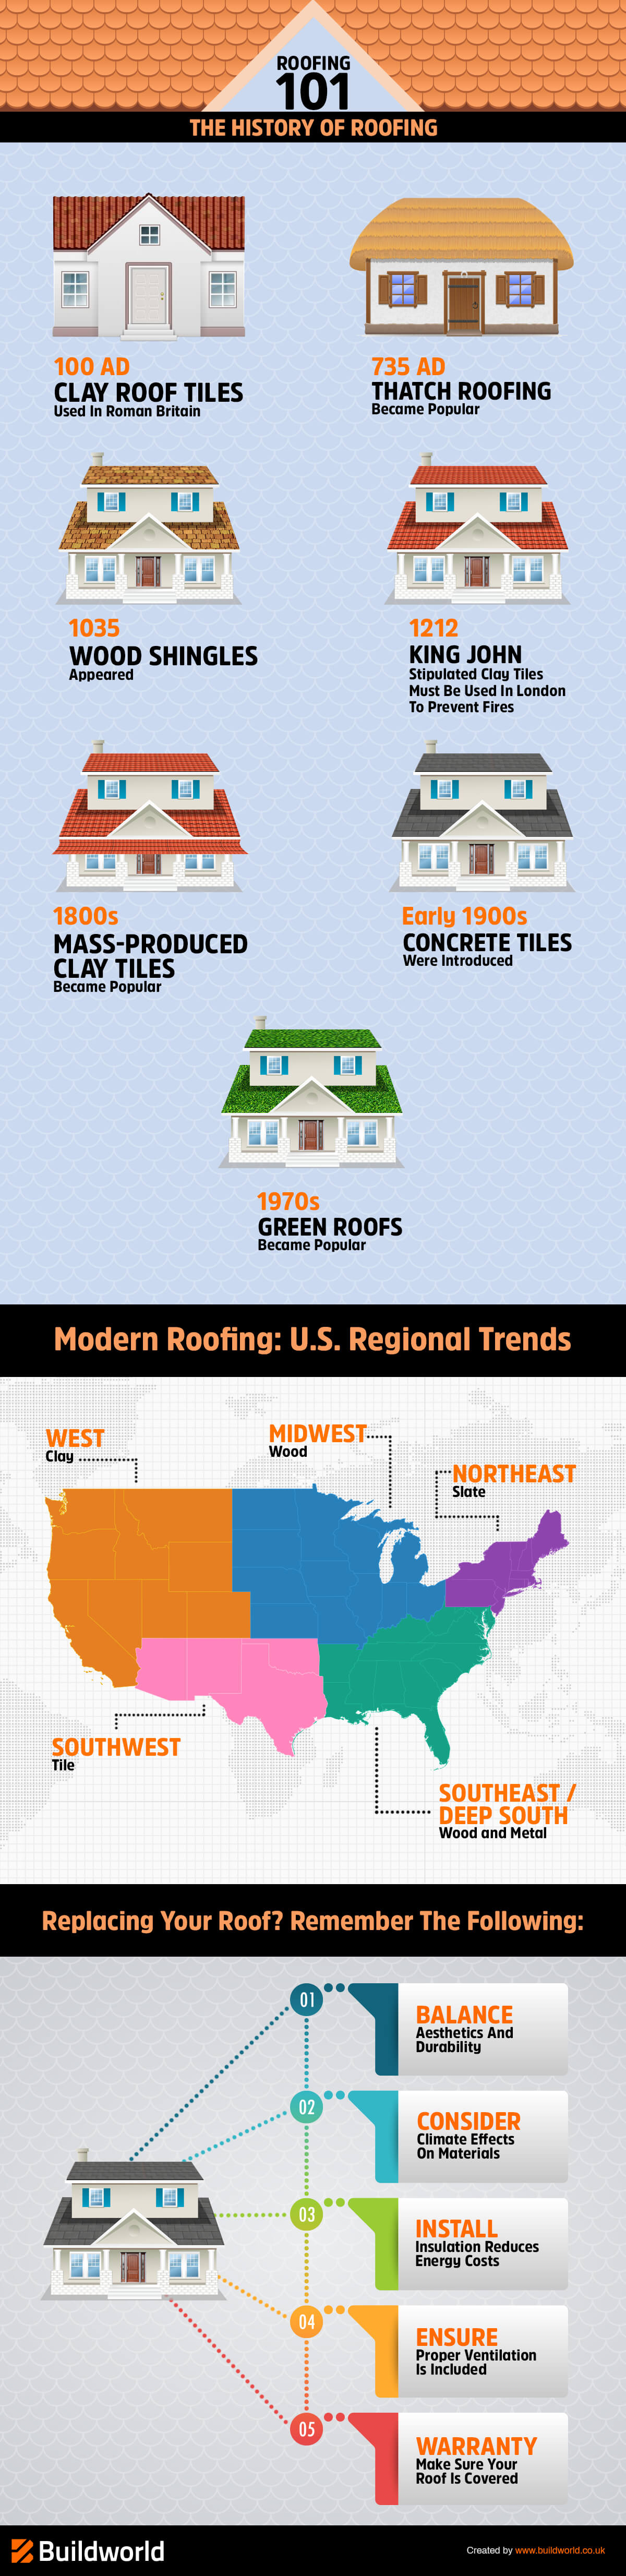 Roofing History